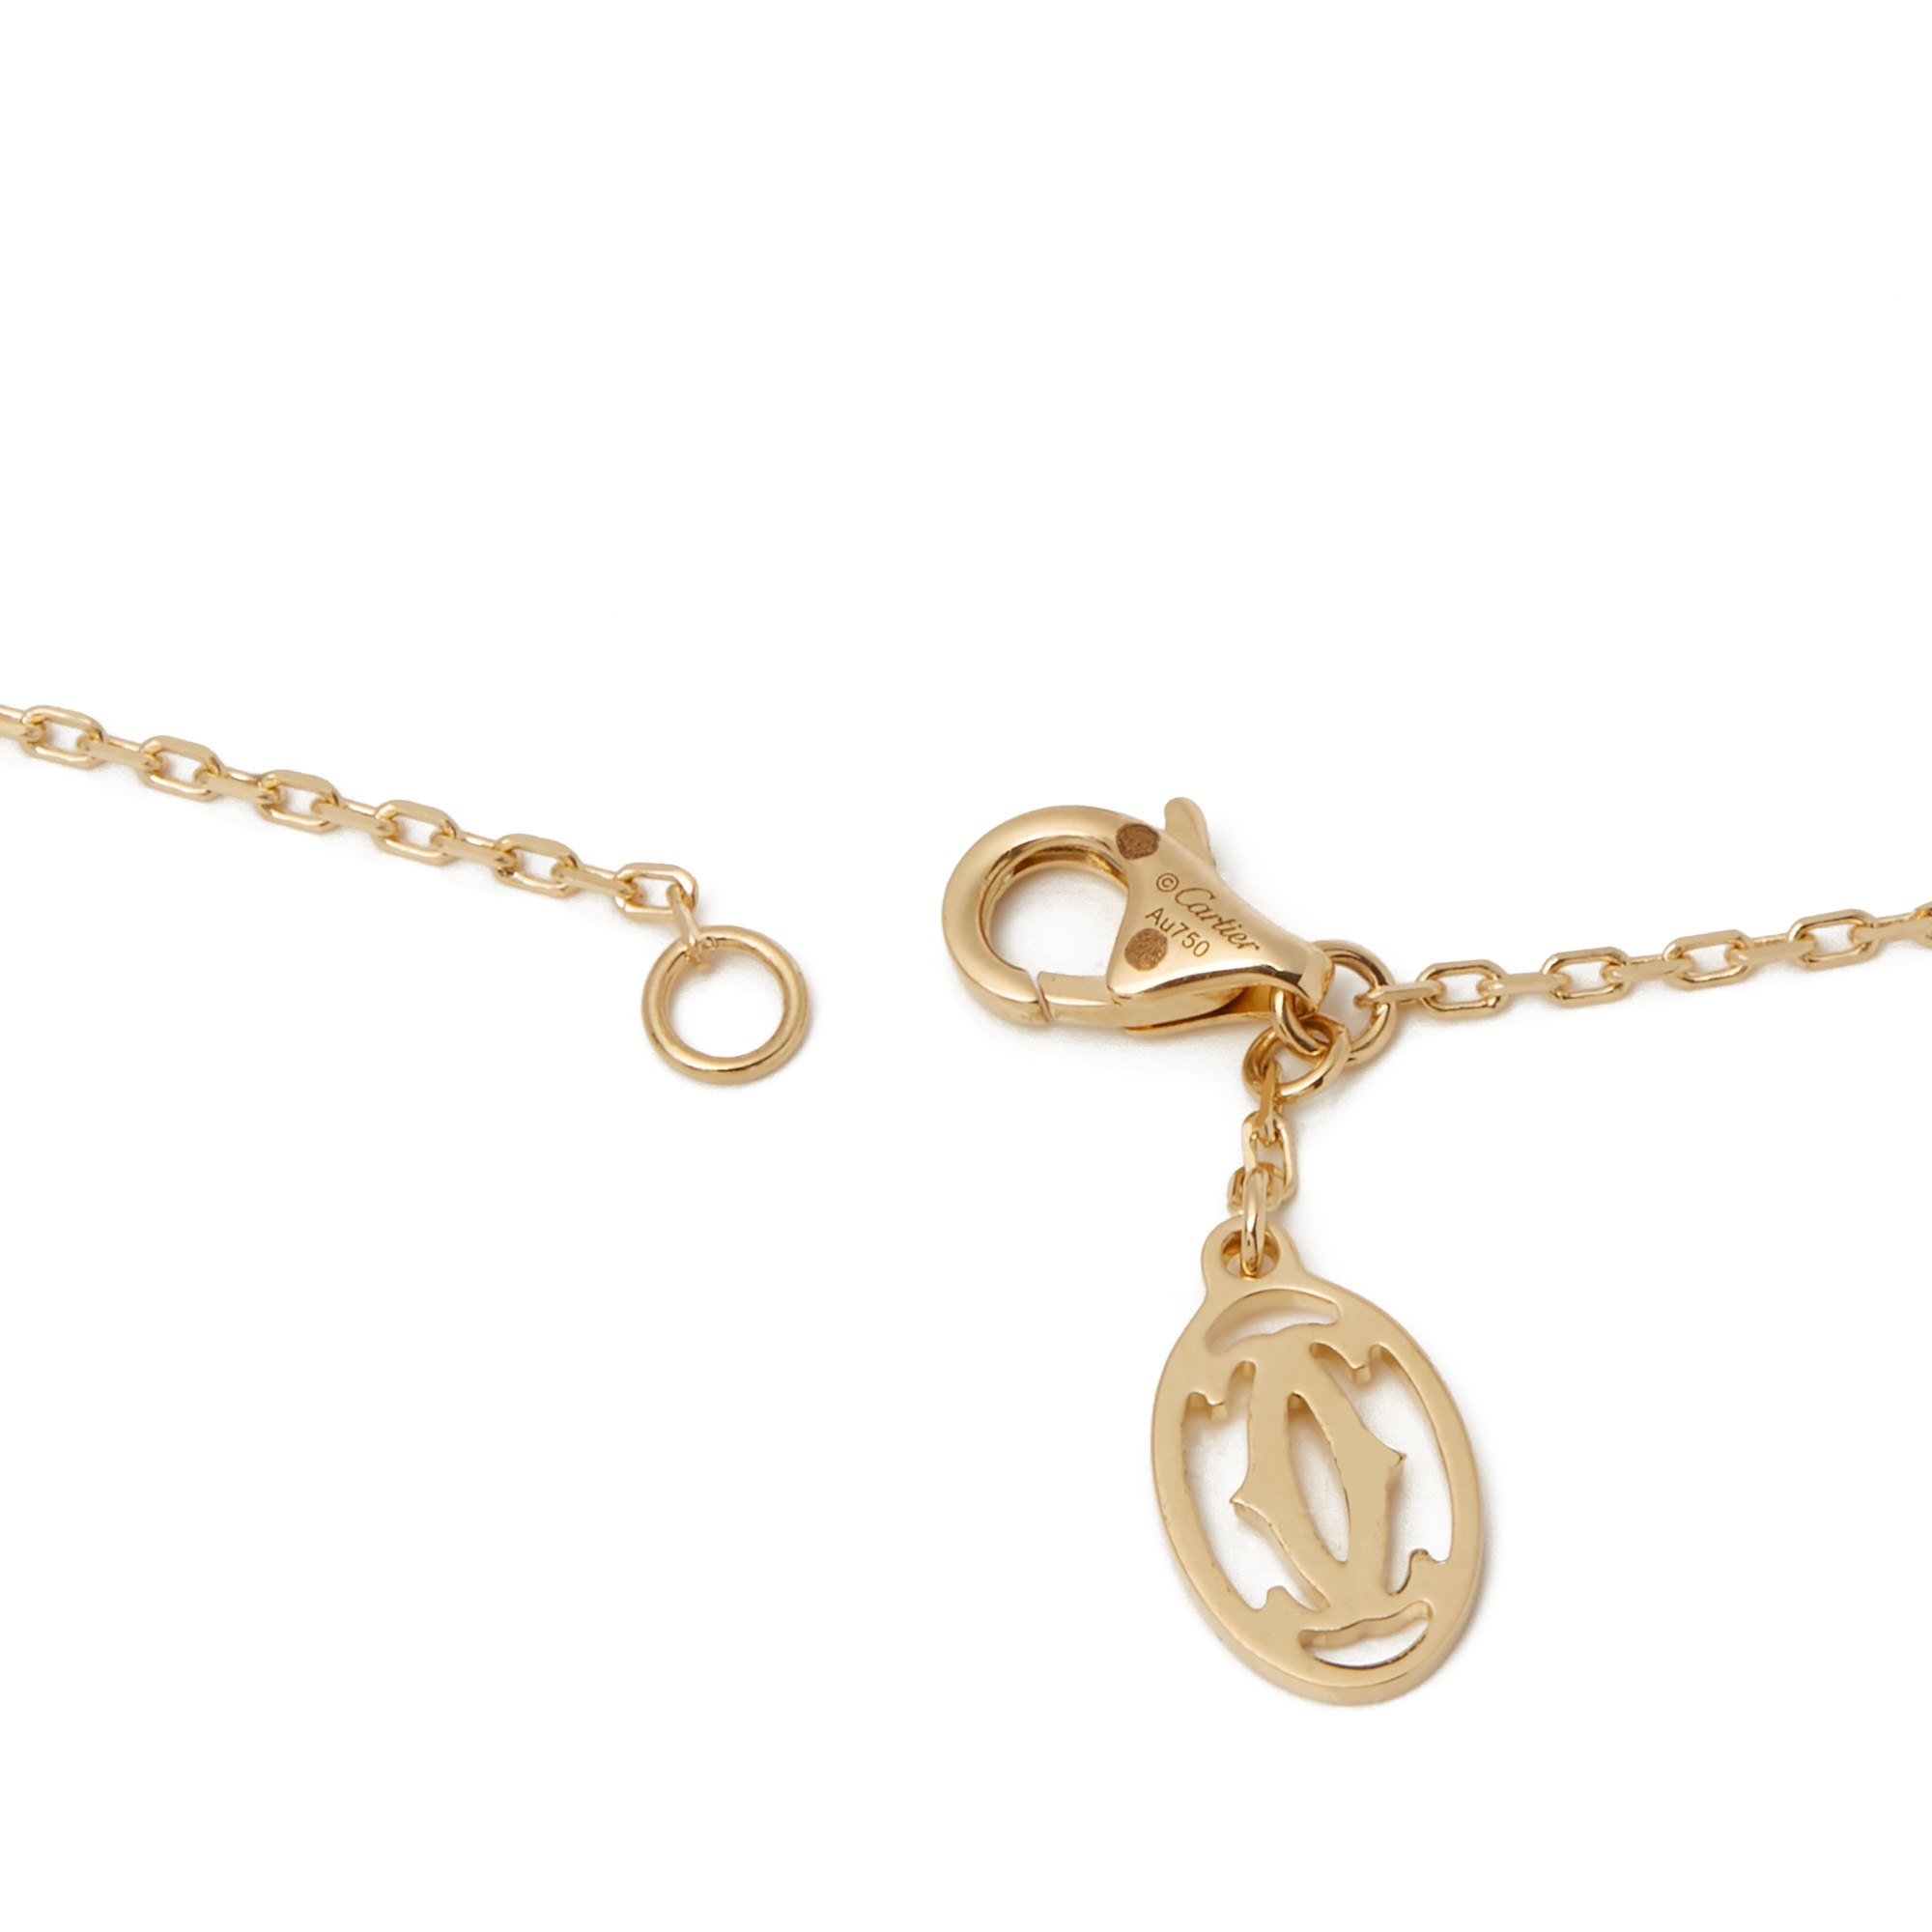 Cartier 18k Yellow Gold Delice De Goa